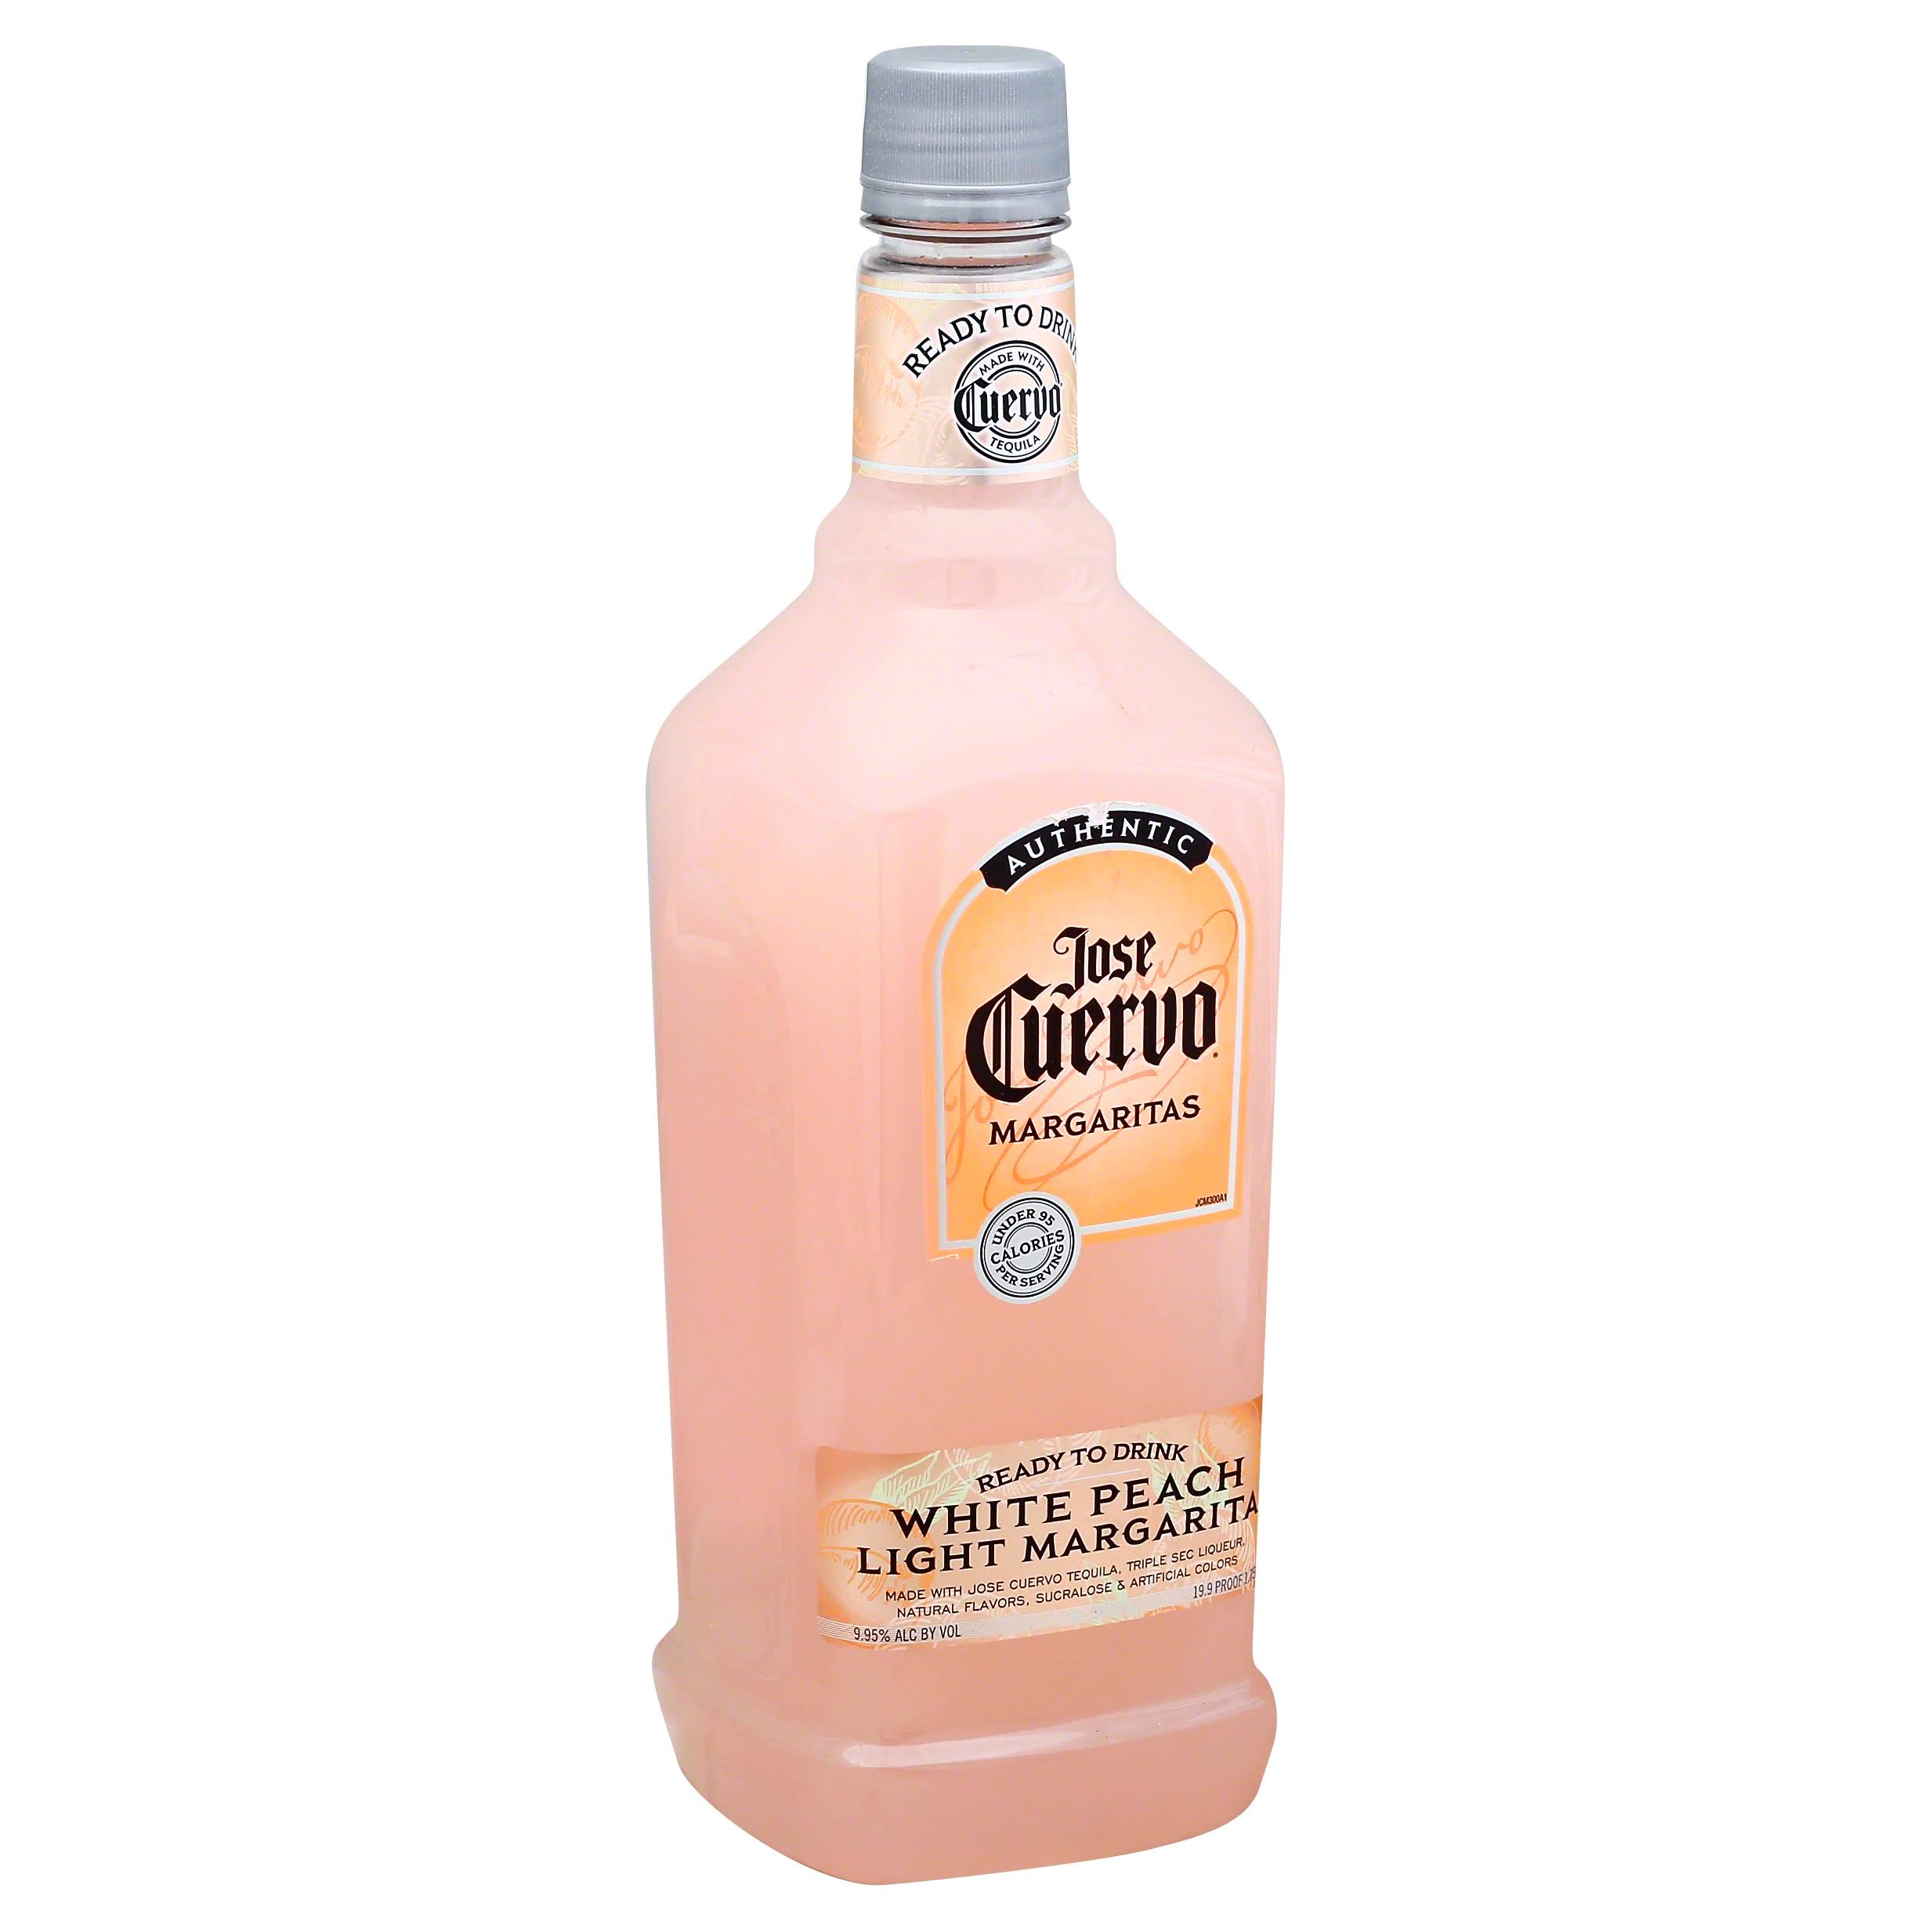 Jose Cuervo Light Margarita Mix - White Peach